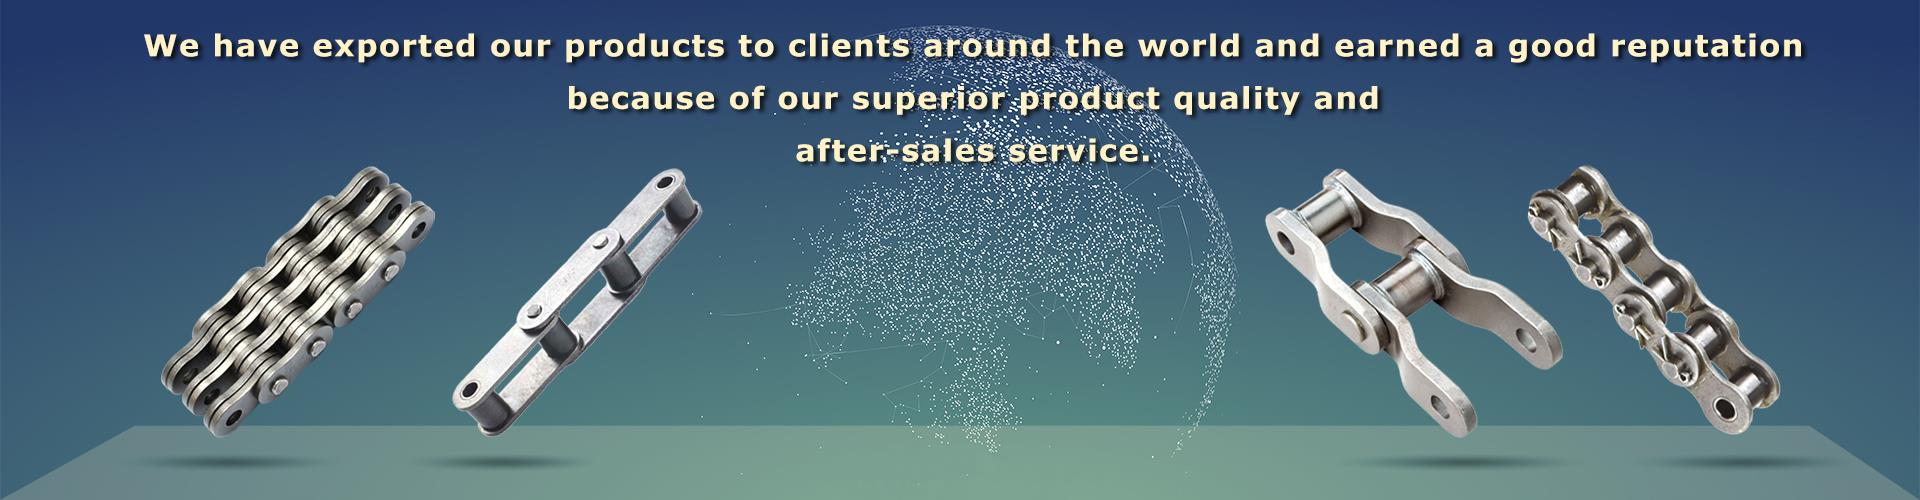 Industry  made in China - replacement parts -  in Cologne Germany  Sprocket High Precision Alloy Steel Gear Sprockets with ce certificate top quality low price